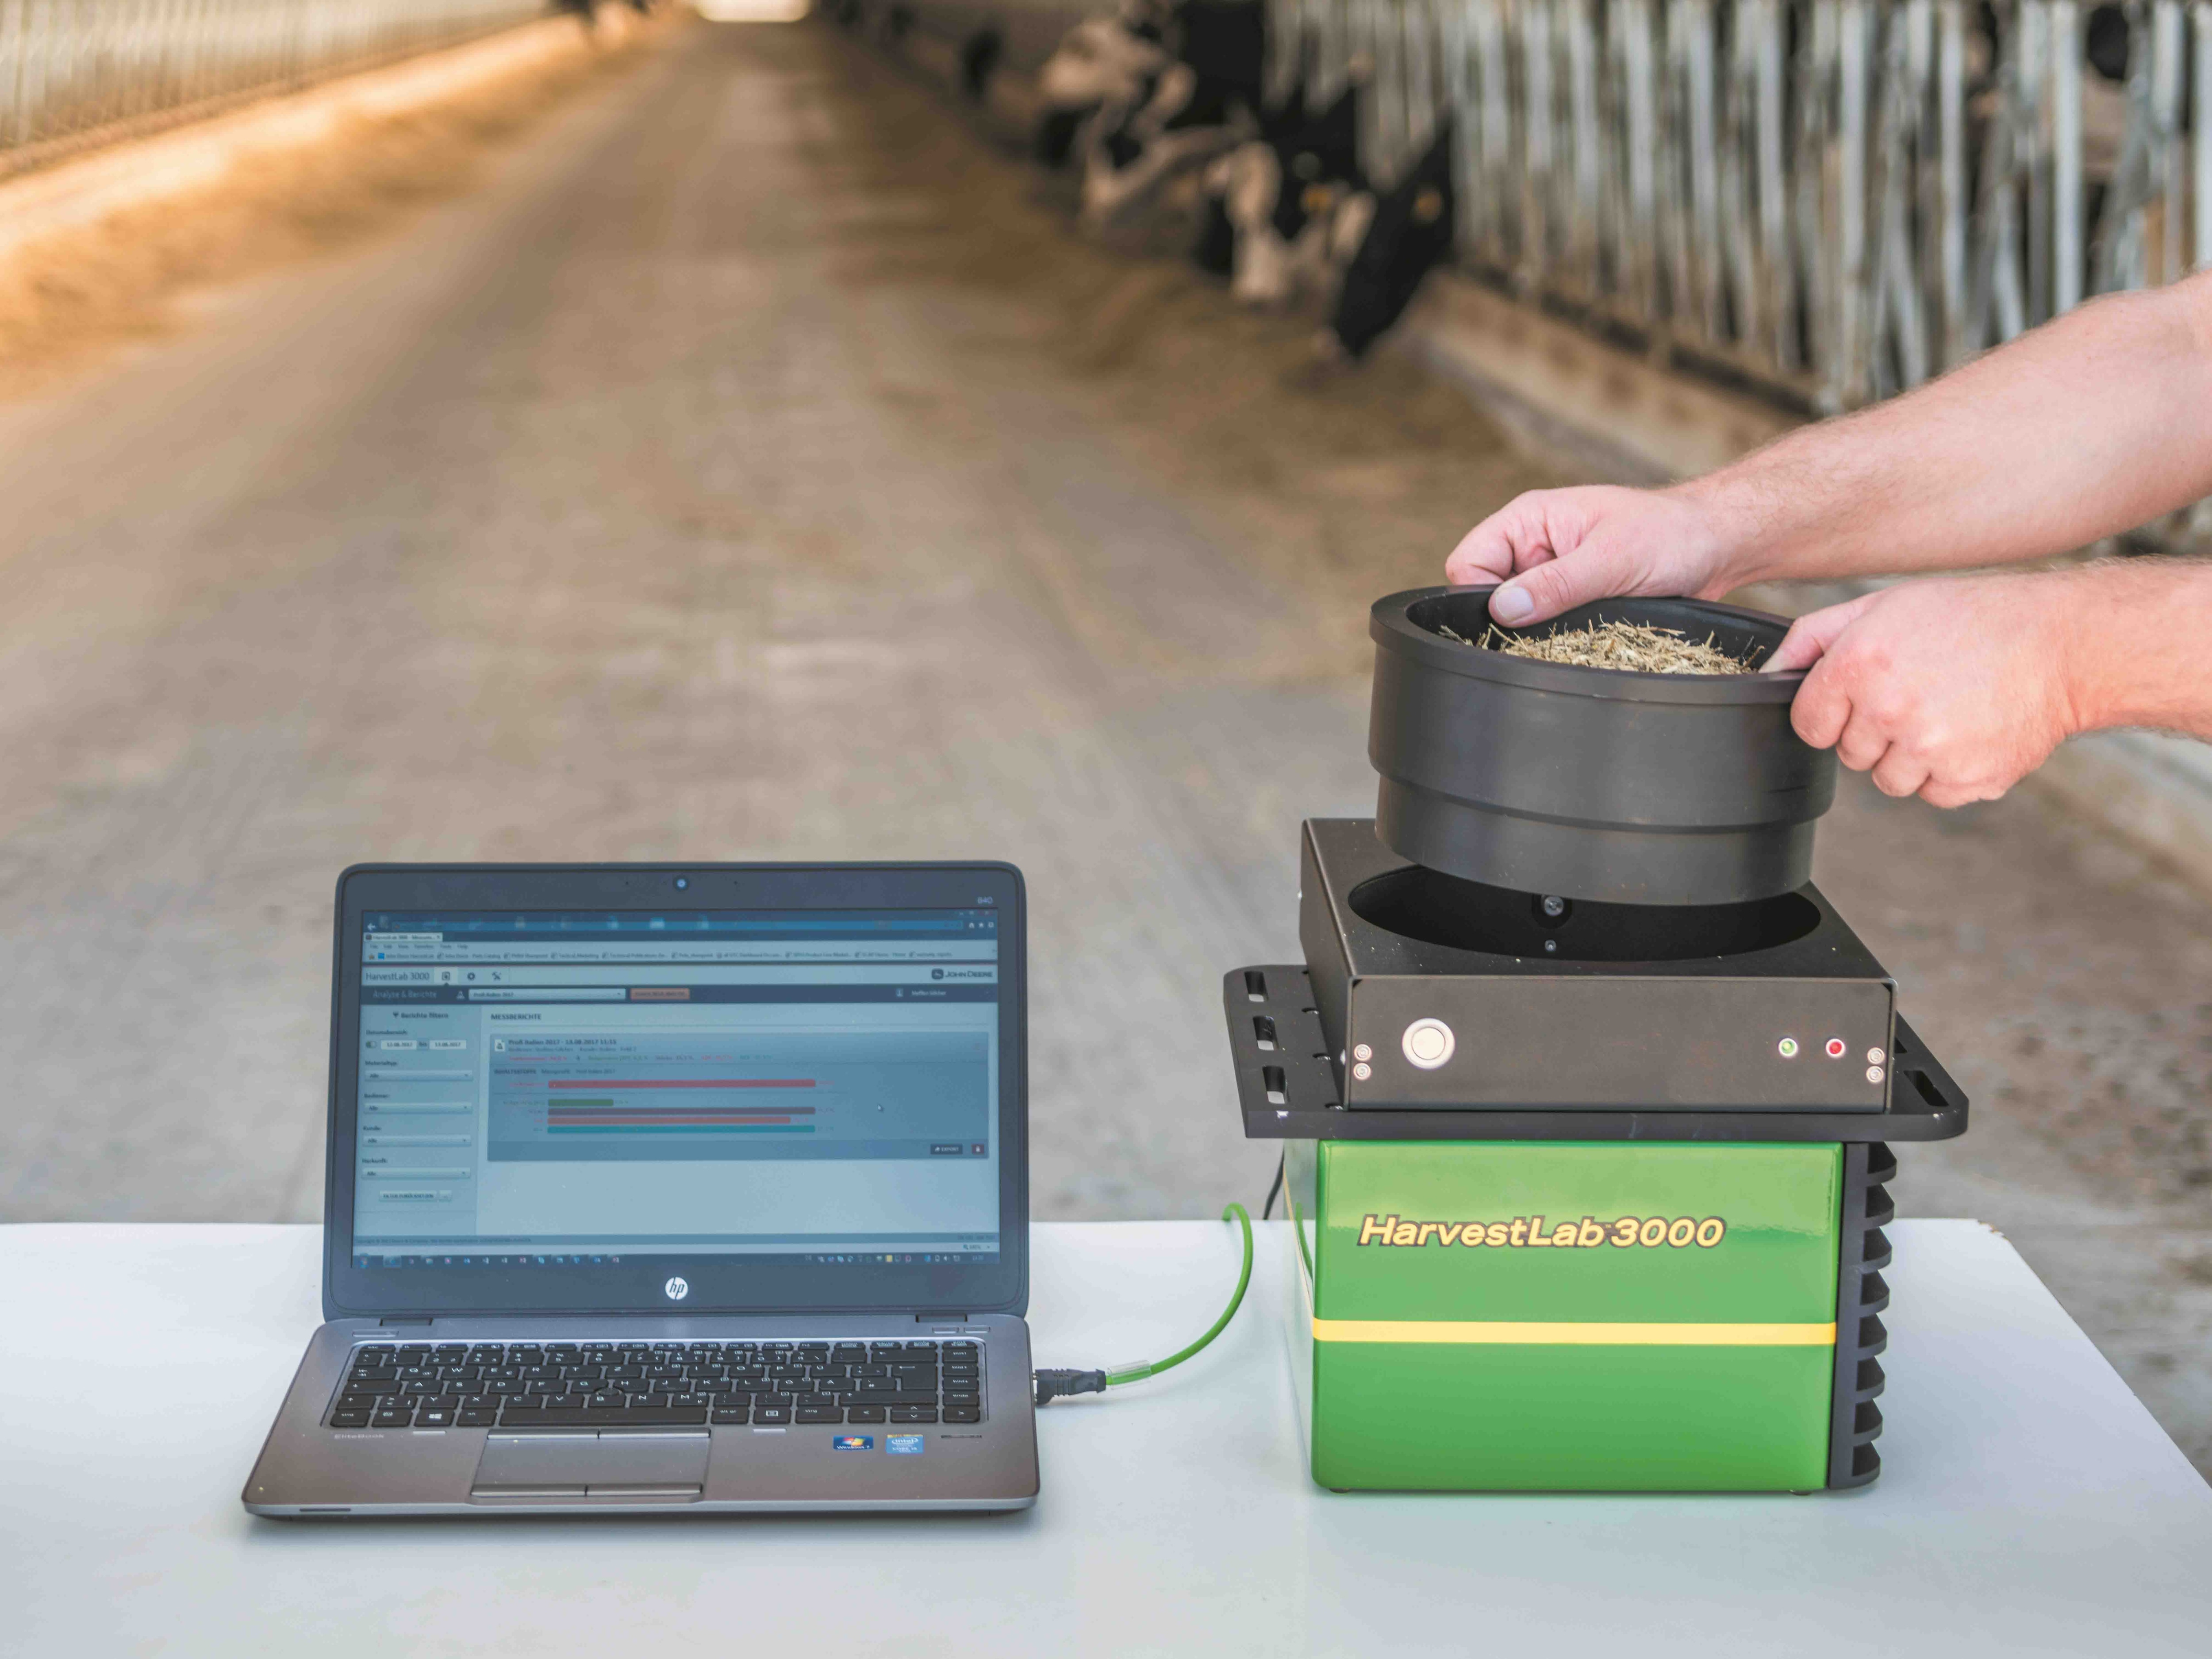 John Deere introduces new HarvestLab™ 3000